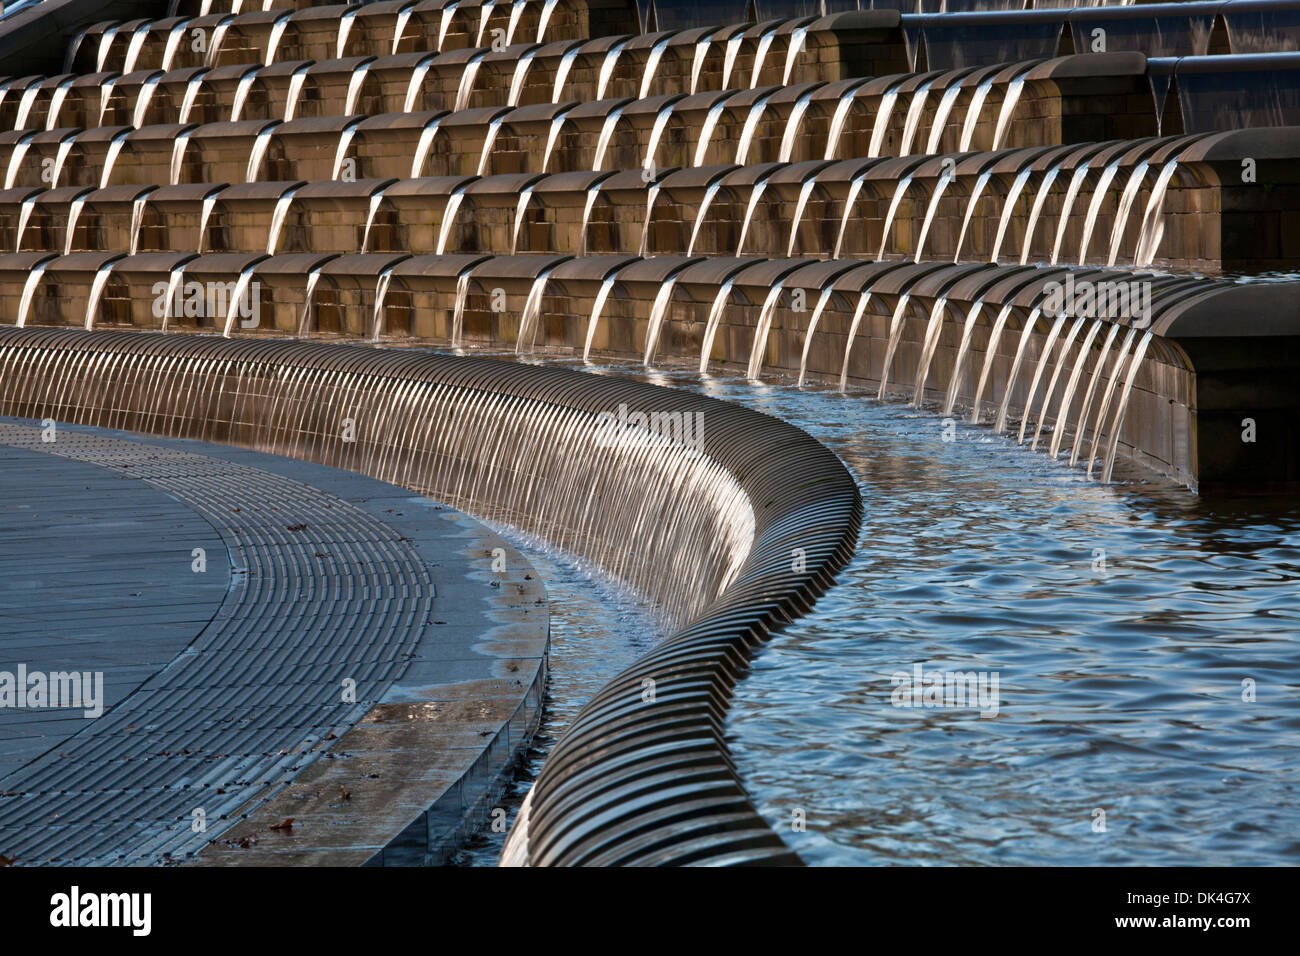 CASCADING, SINUOUS, WATER FEATURE AS PART OF URBAN DESIGN, TRAIN STATION SQUARE, SHEFFIELD, SOUTH YORKSHIRE, ENGLAND - Stock Image